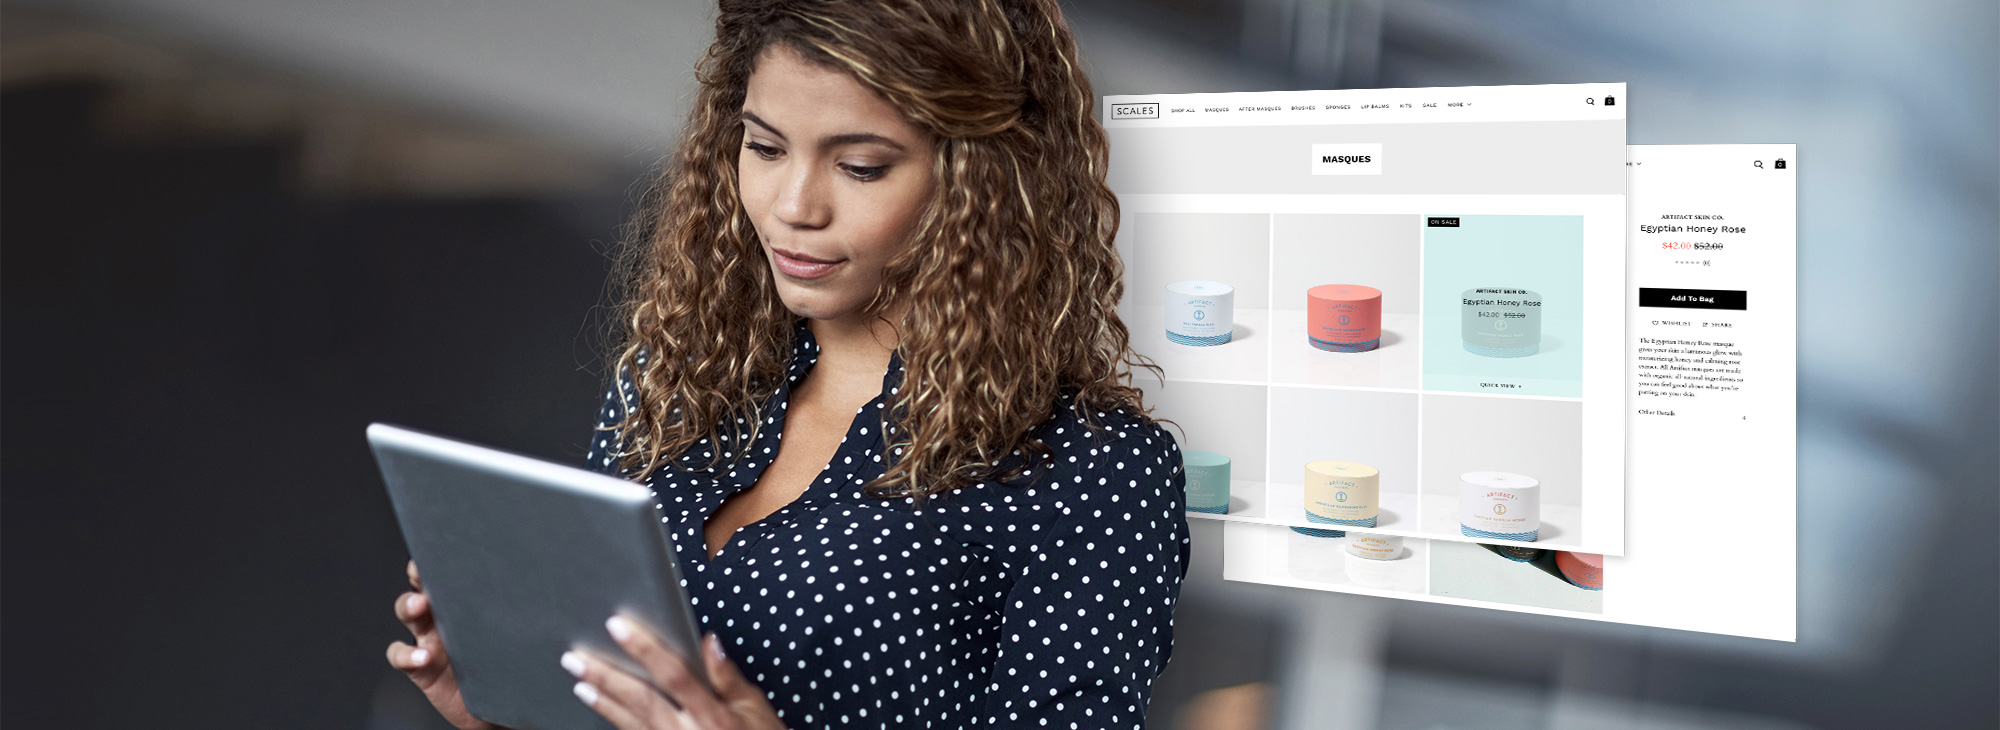 30 Proven Ways To Drive Ecommerce Traffic and Conversions To Your Online Store